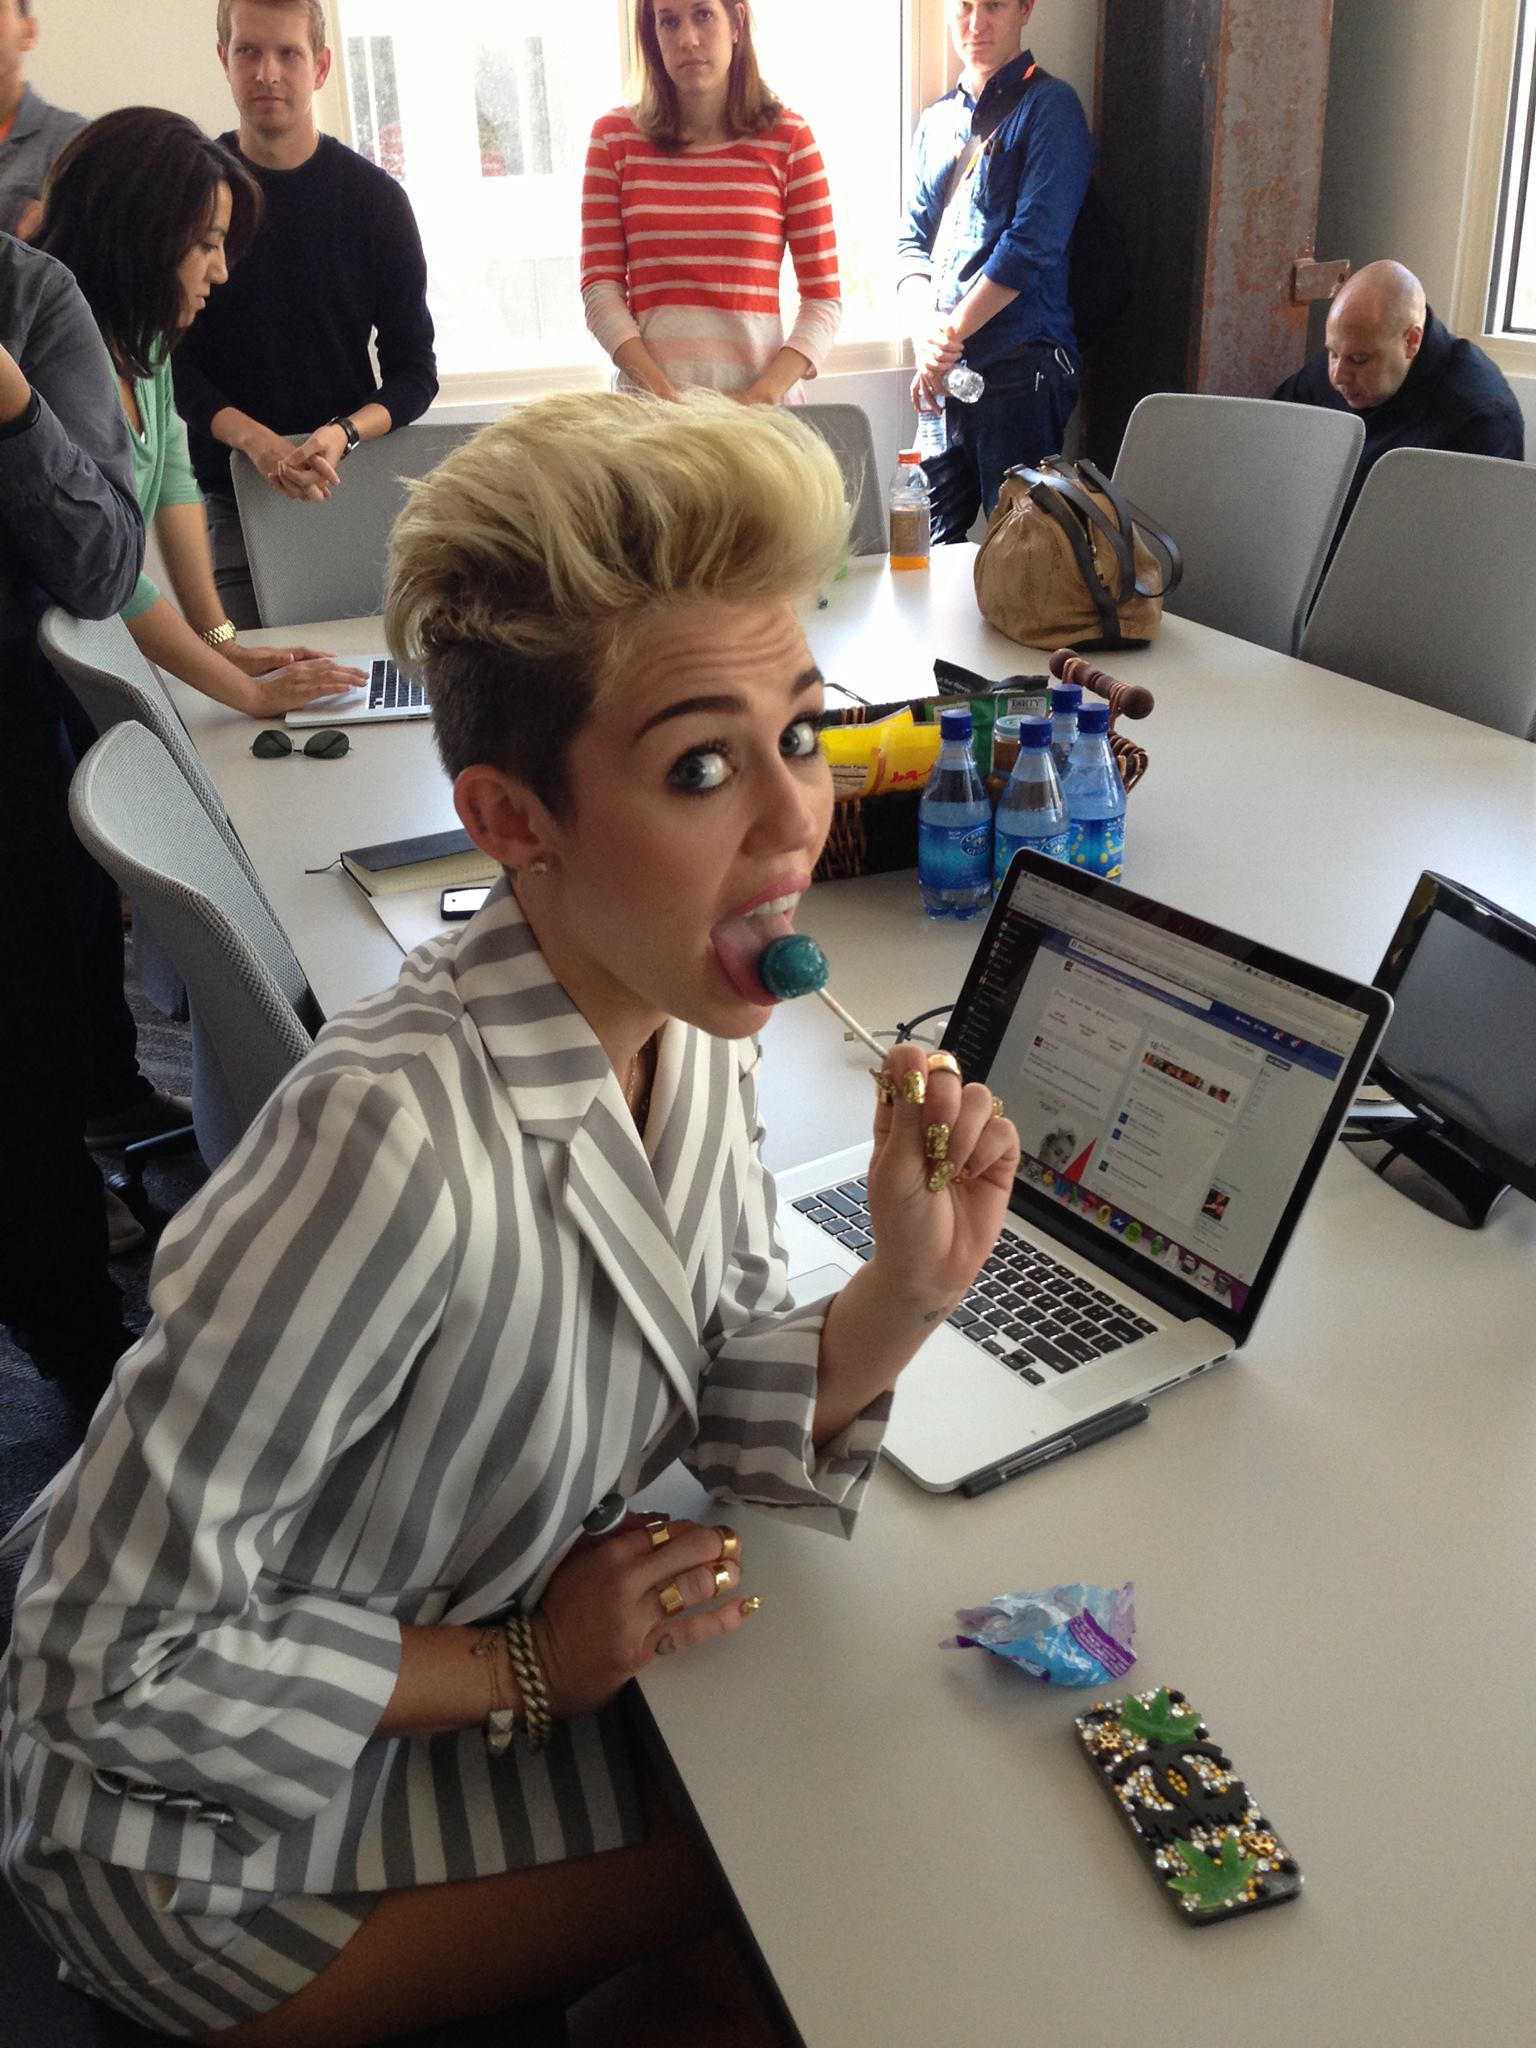 Miley Cyrus at Facebook Headquarters -02 - GotCeleb